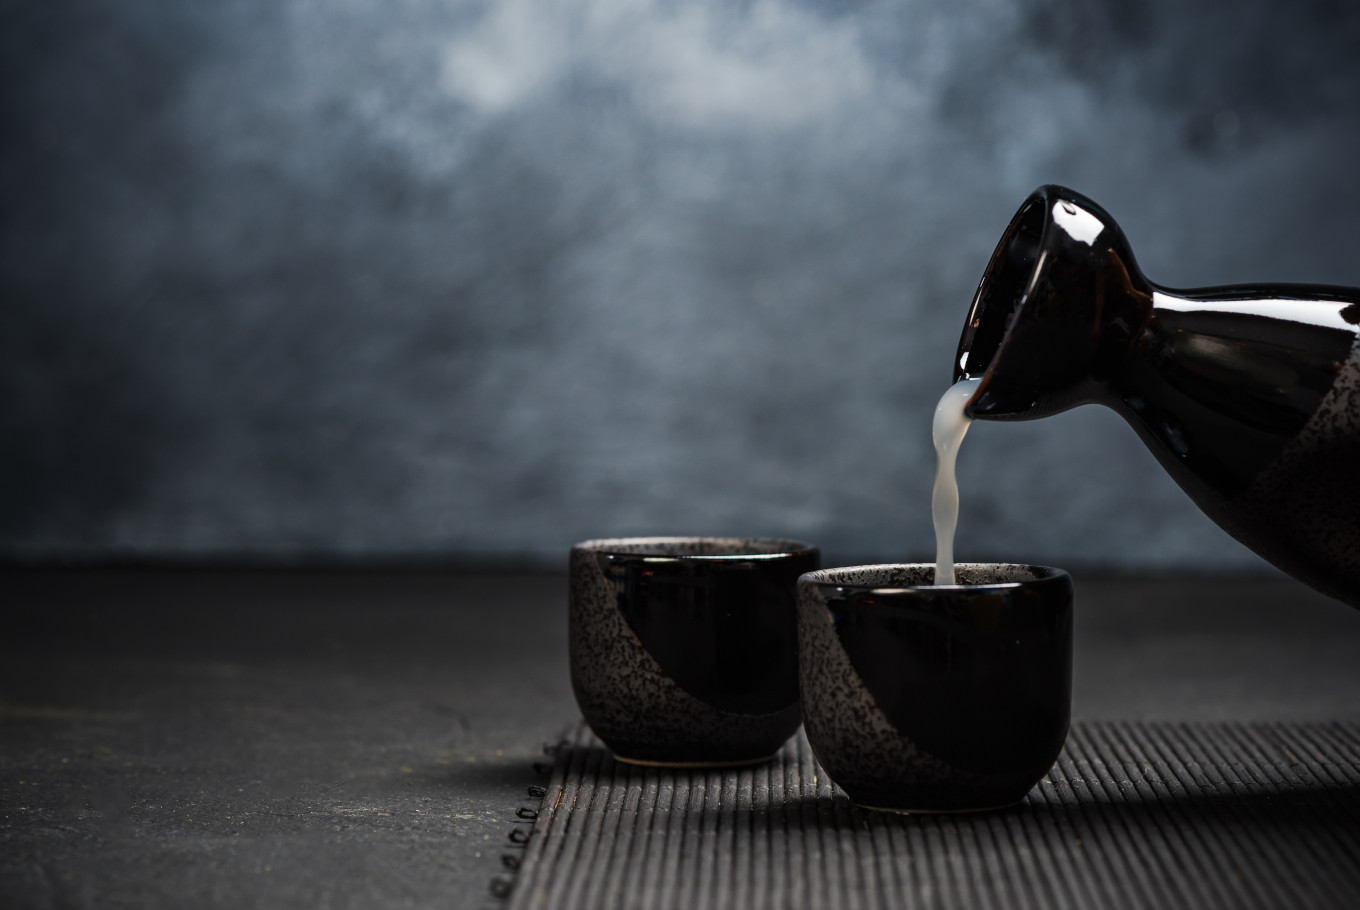 Pair bring a taste of the unknown to traditional sake brewing